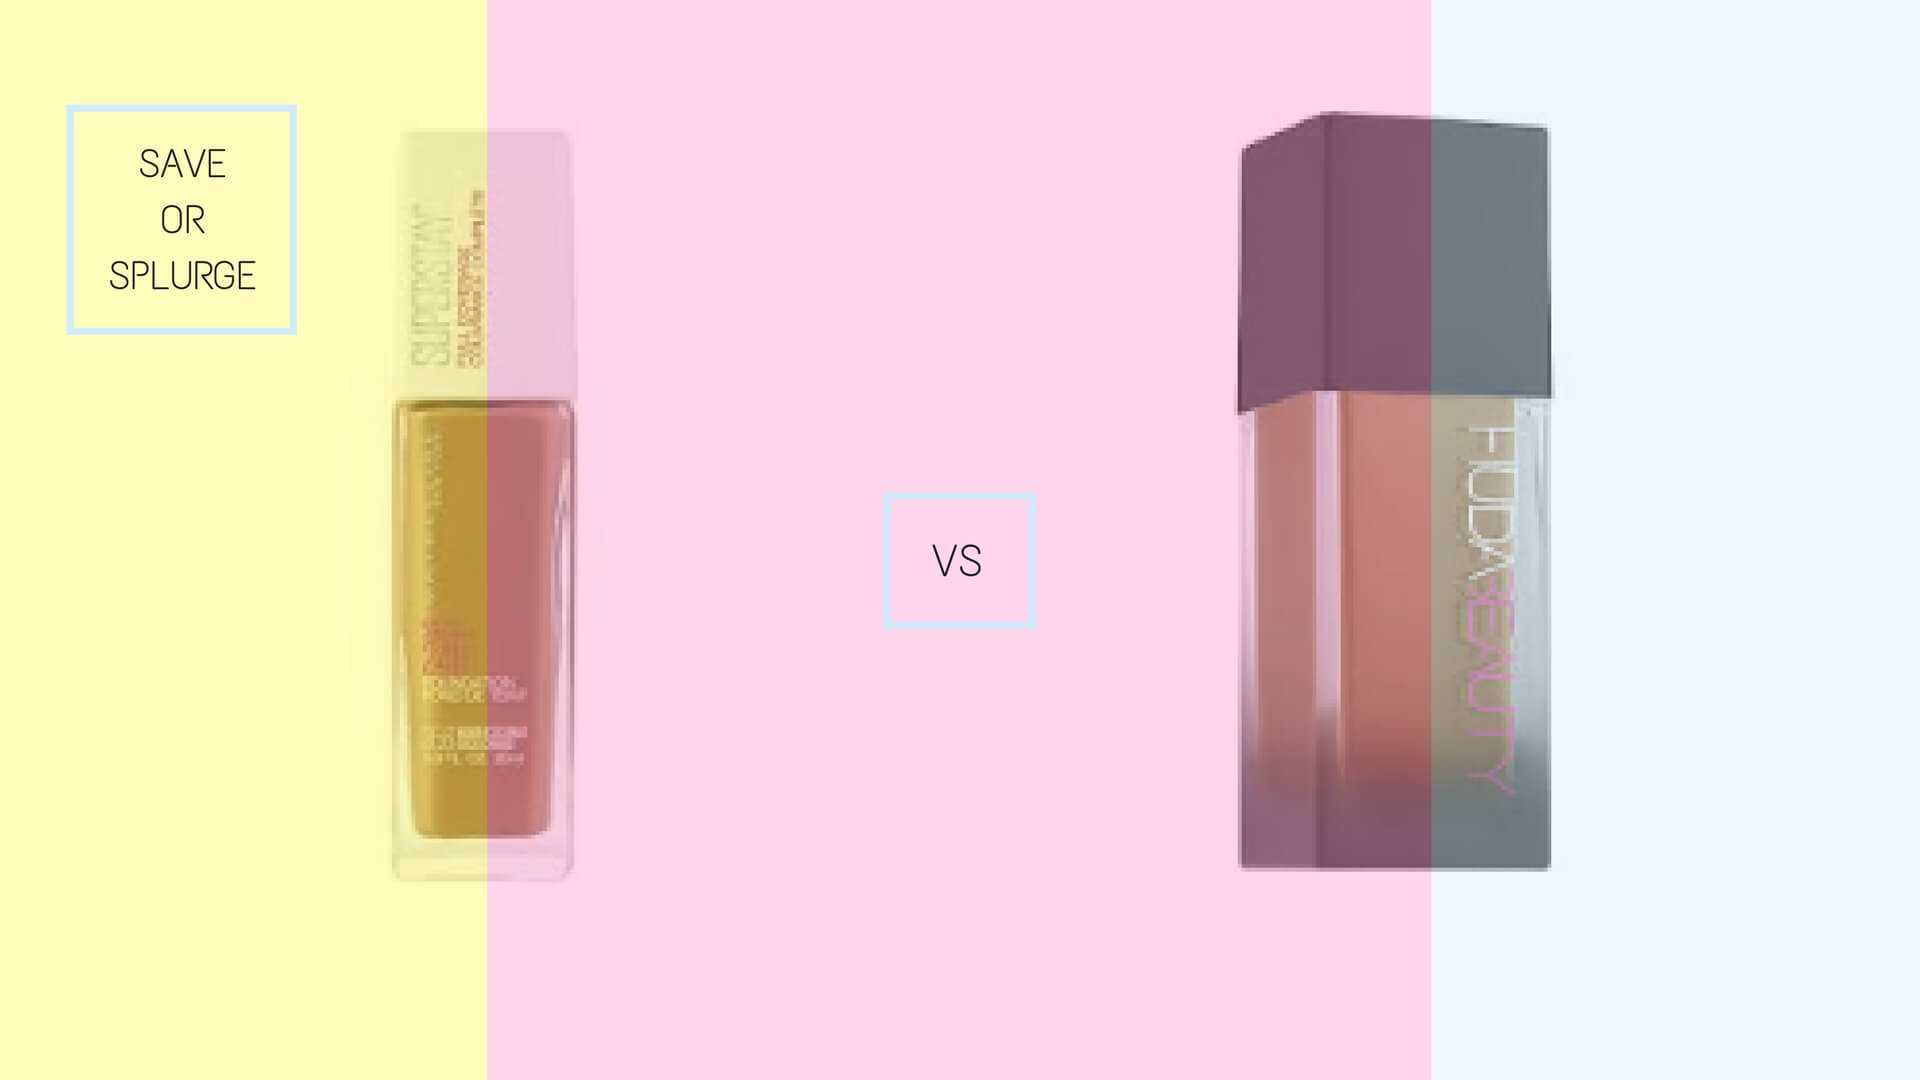 Best Drugstore Foundations Dupes Under 10 Dollars | HUDA Beauty #FauxFilter Foundation Dupe Maybelline Superstay Full Coverage Foundation | Chiclypoised.com